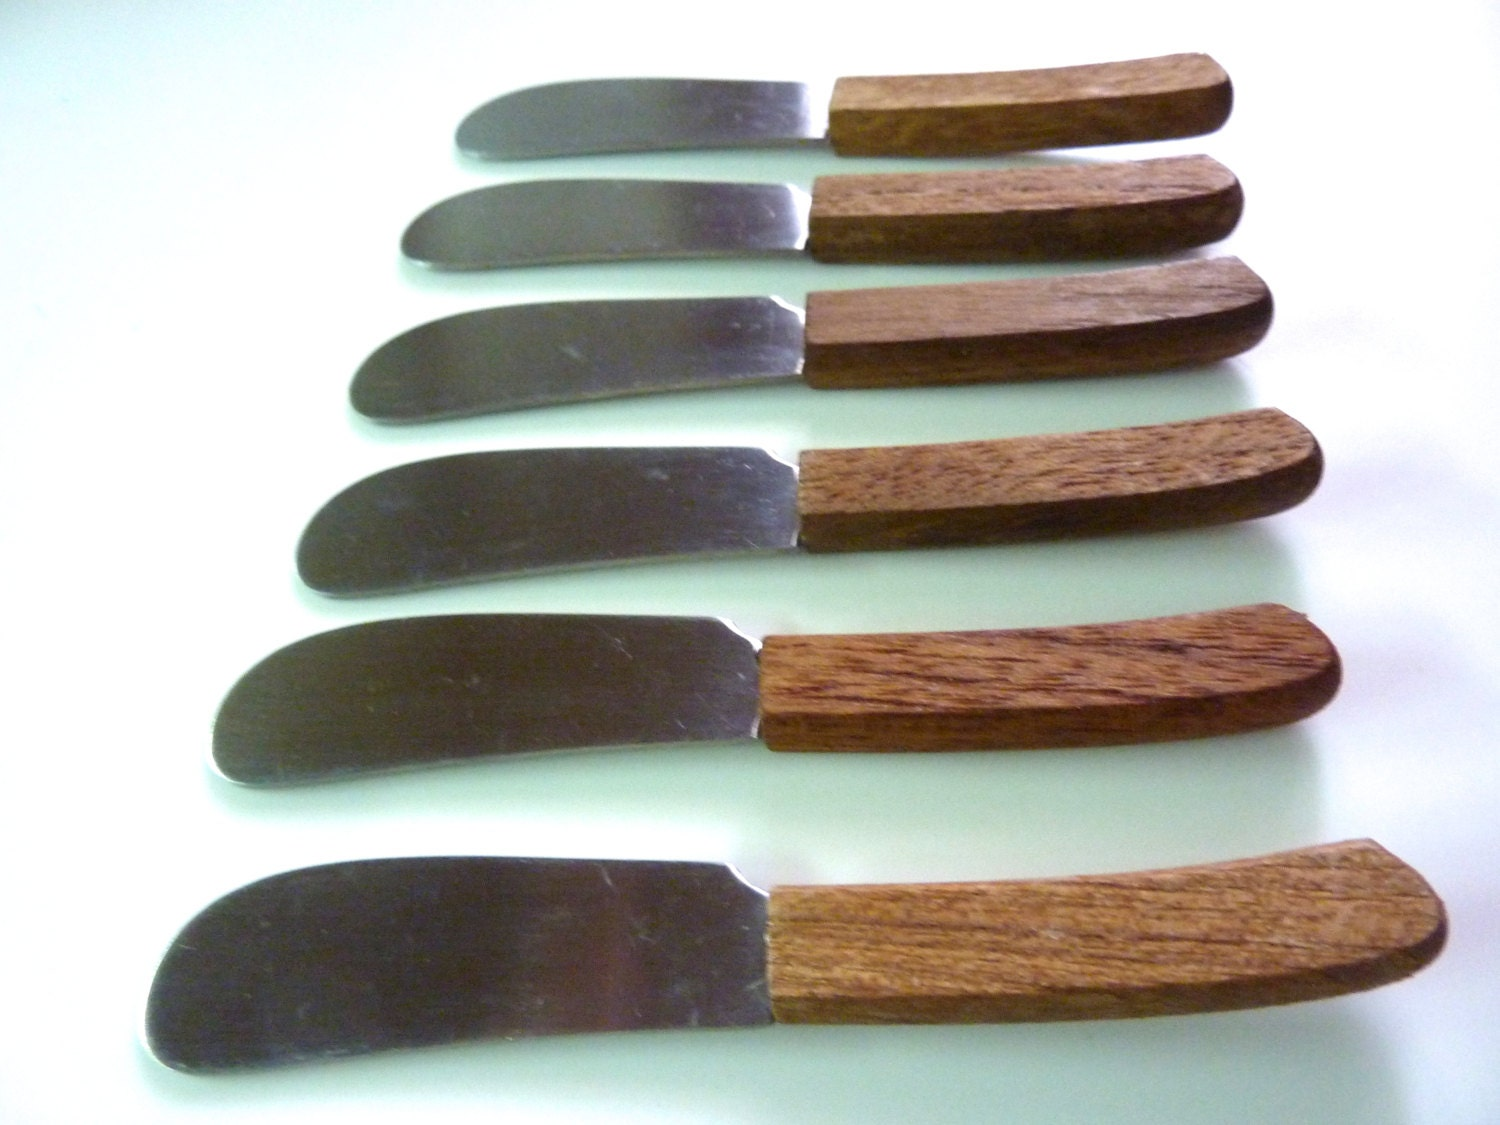 6 canap knives or spreaders stainless wood handle for Buy canape shells